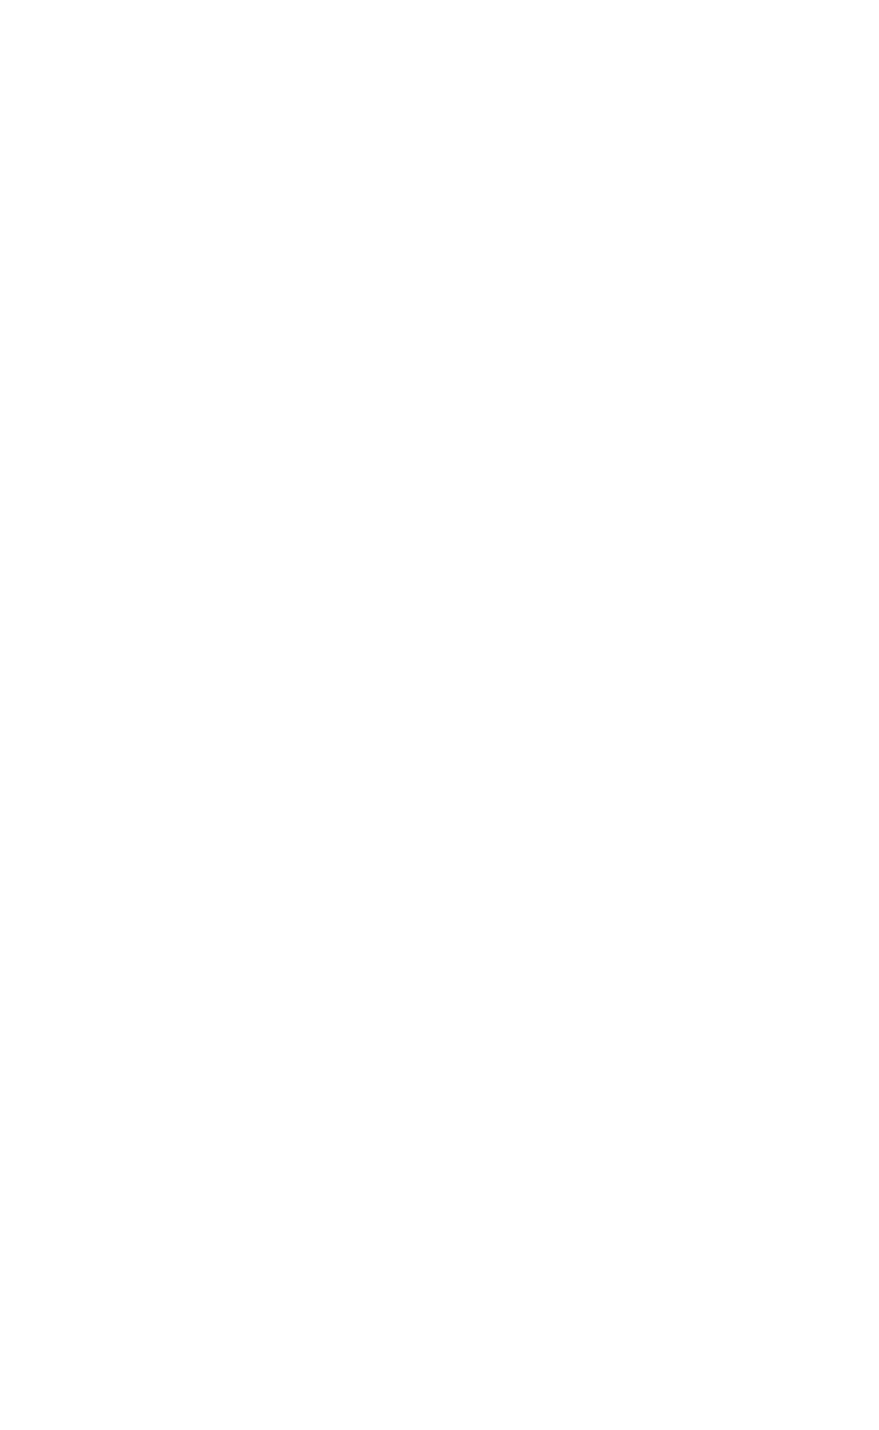 Moving Hexagons